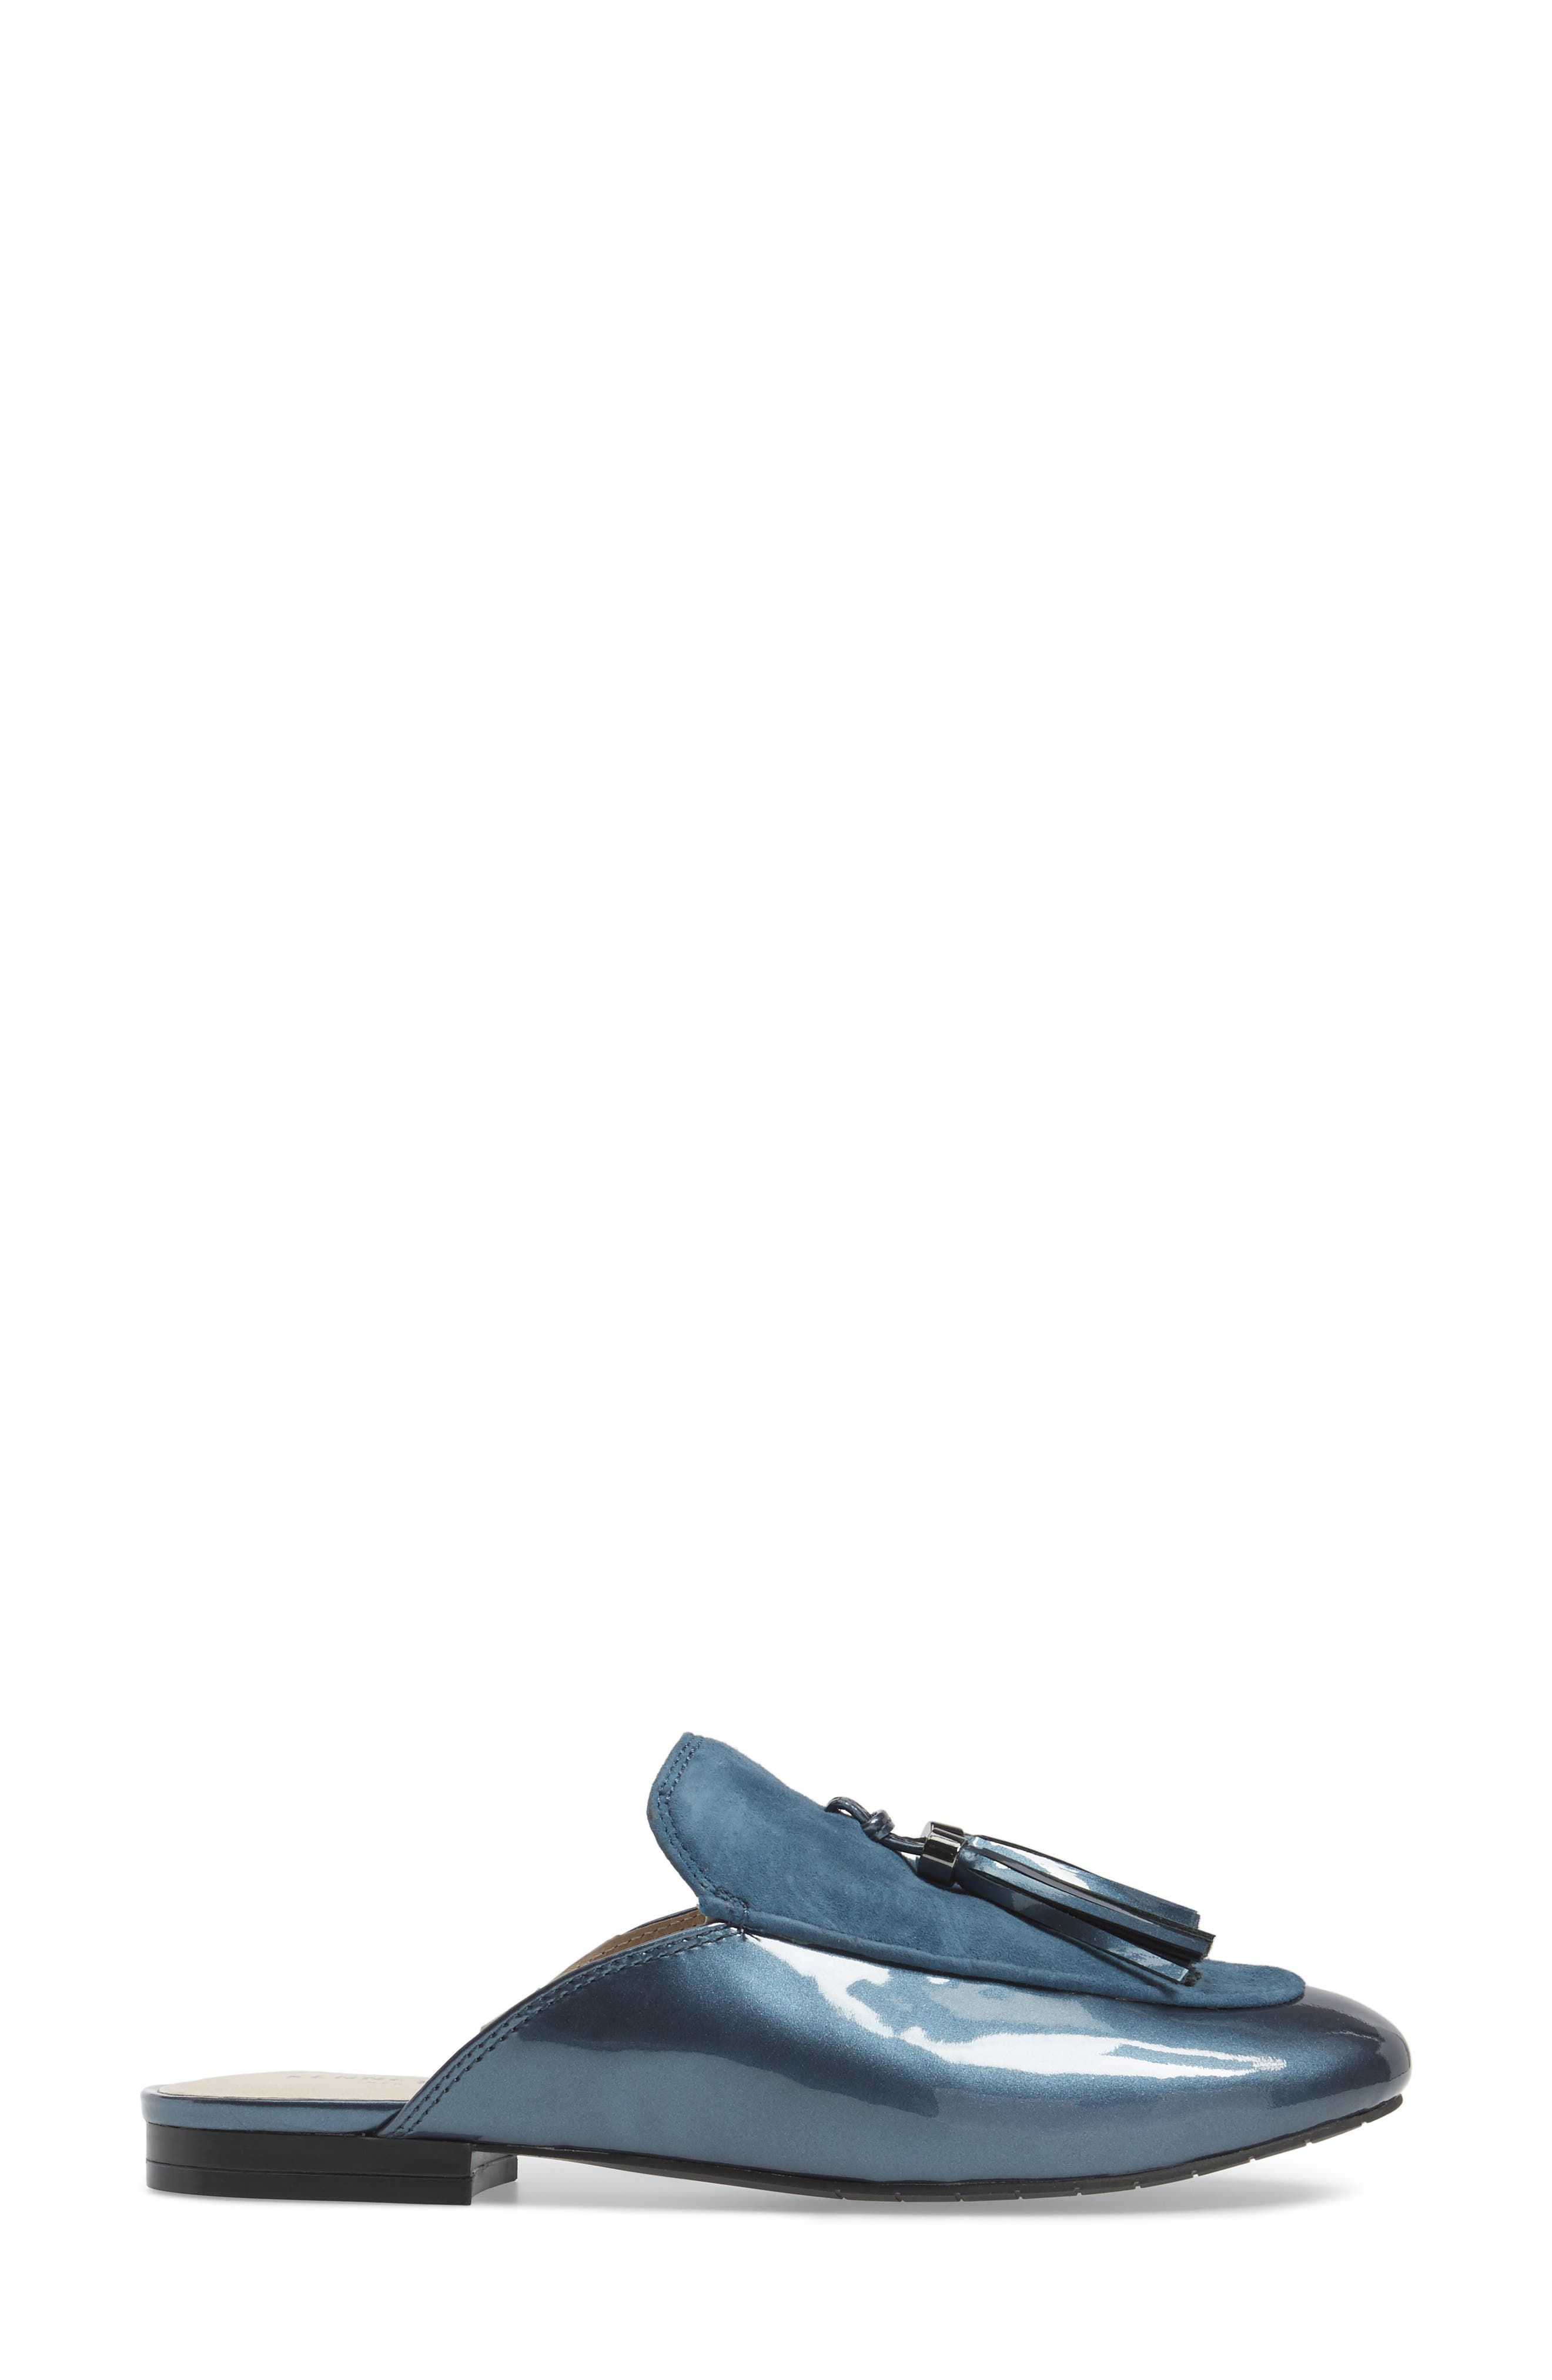 Whinnie Loafer Mule,                             Alternate thumbnail 3, color,                             Indigo Patent Leather